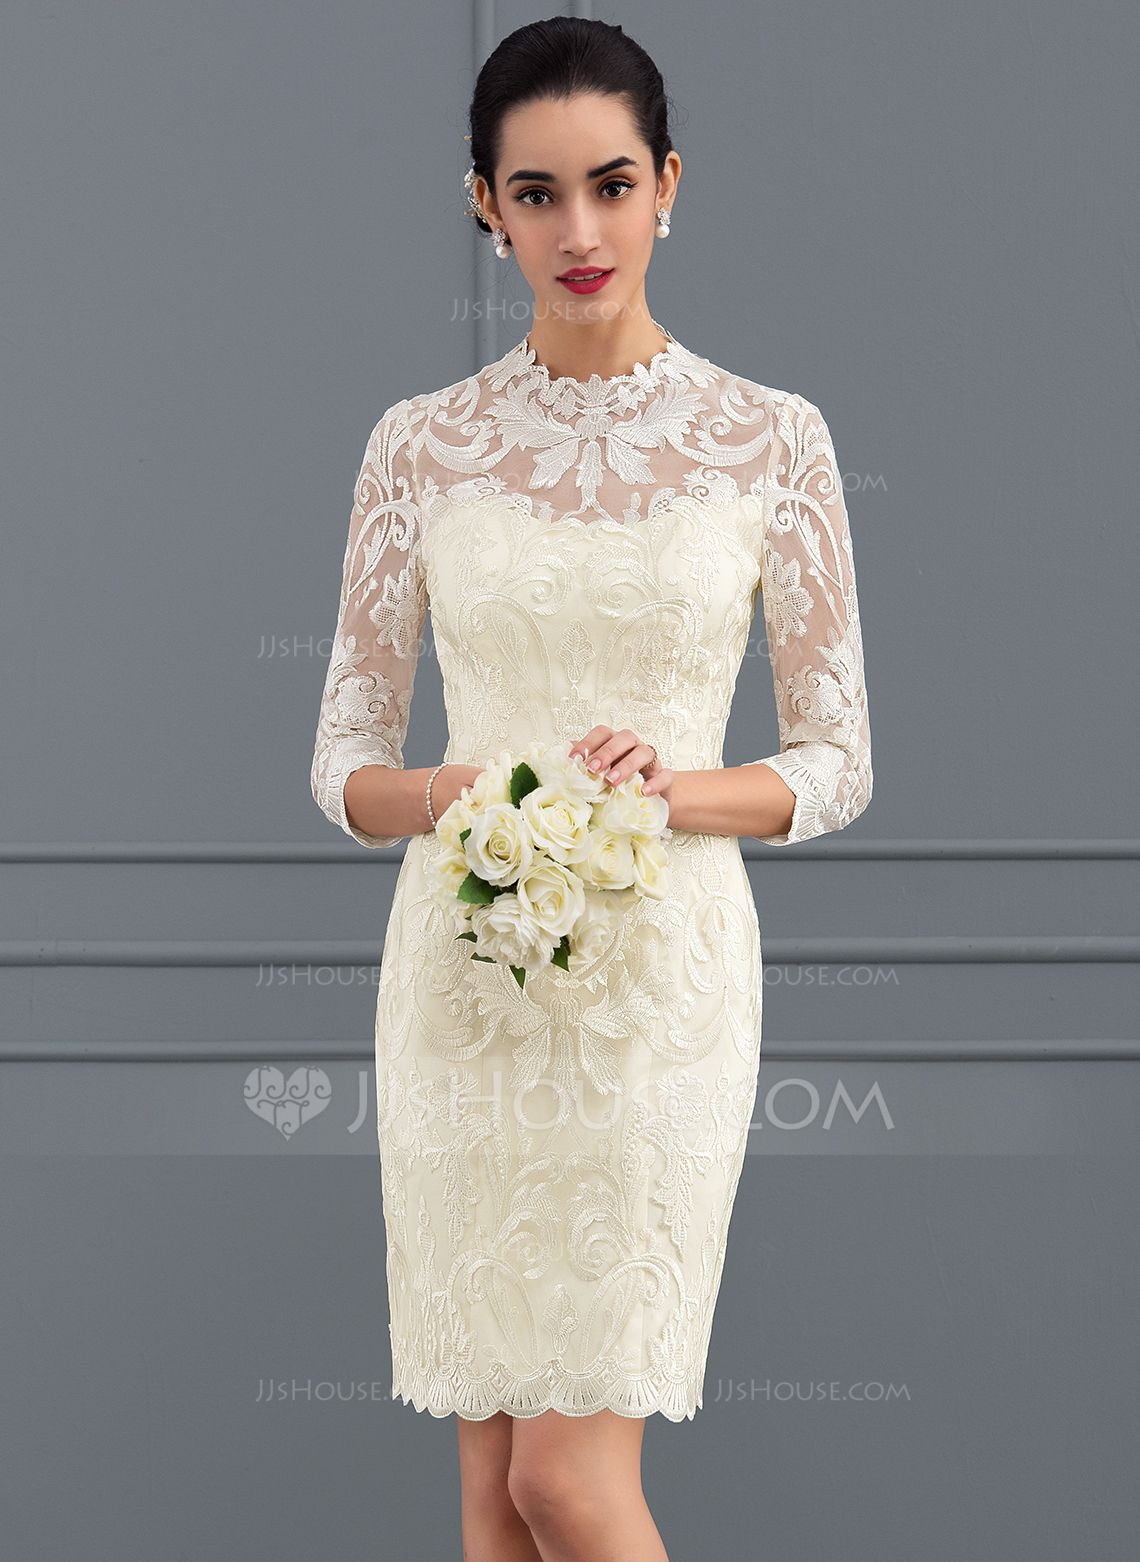 Jjshouse As The Global Leading Online Retailer Provides A Large Variety Of Wedding Dresses Wedding Party Dresses Special Occasion Dresse Dresses Weddi [ 1562 x 1140 Pixel ]